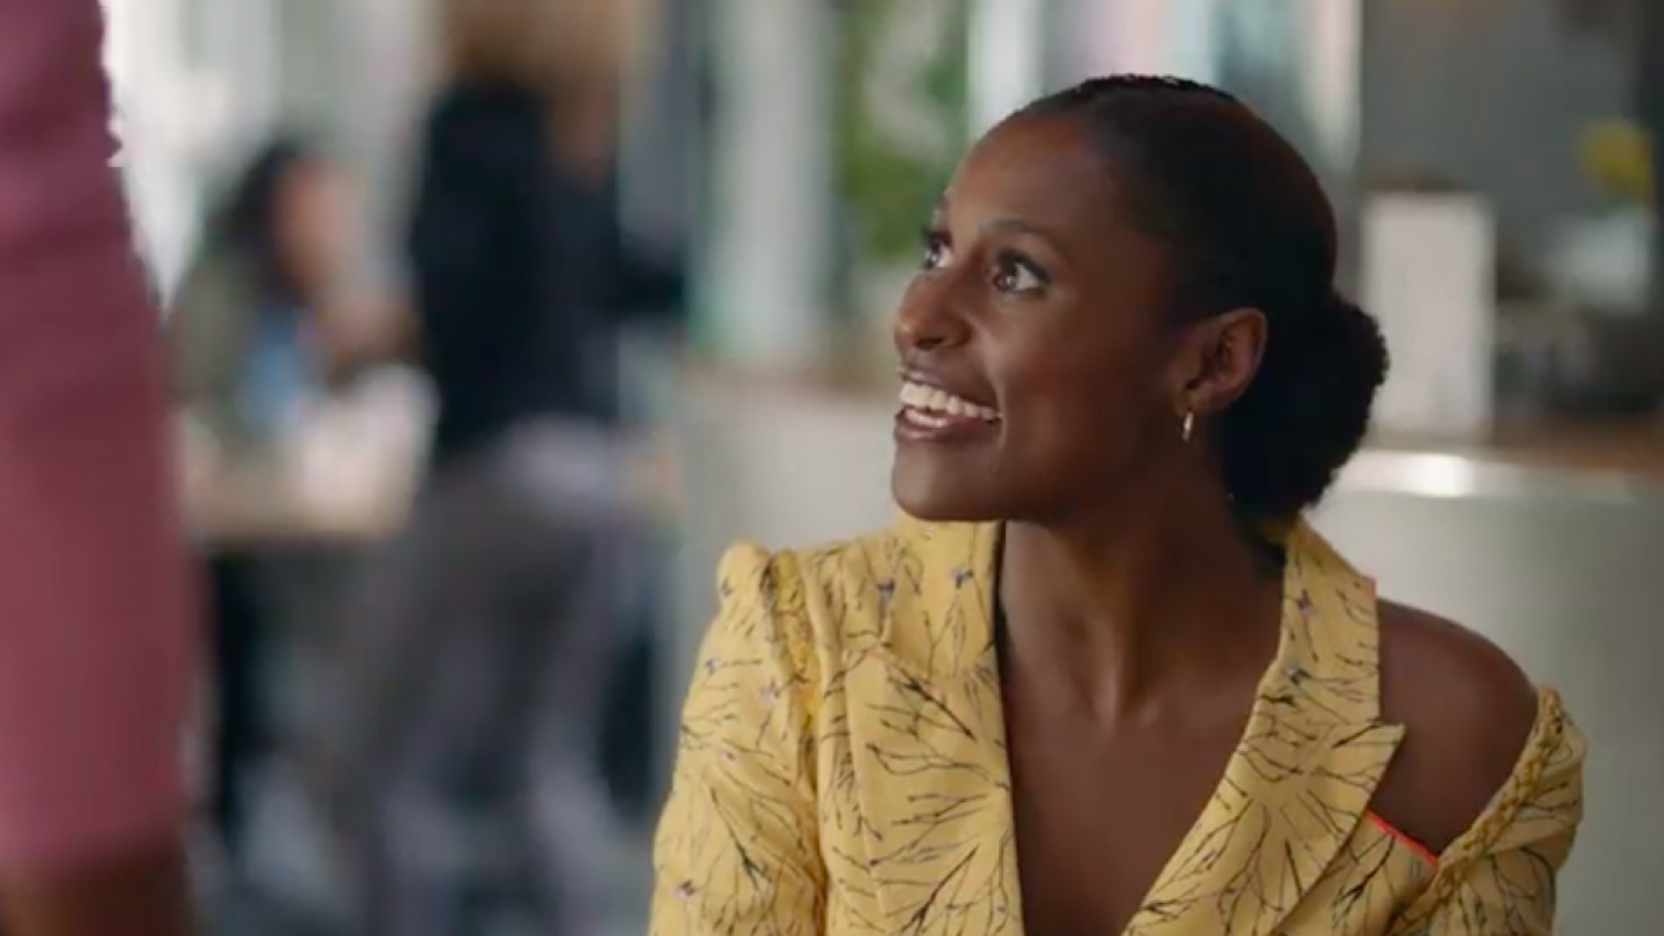 Watch The New 'Insecure' Season 4 Trailer